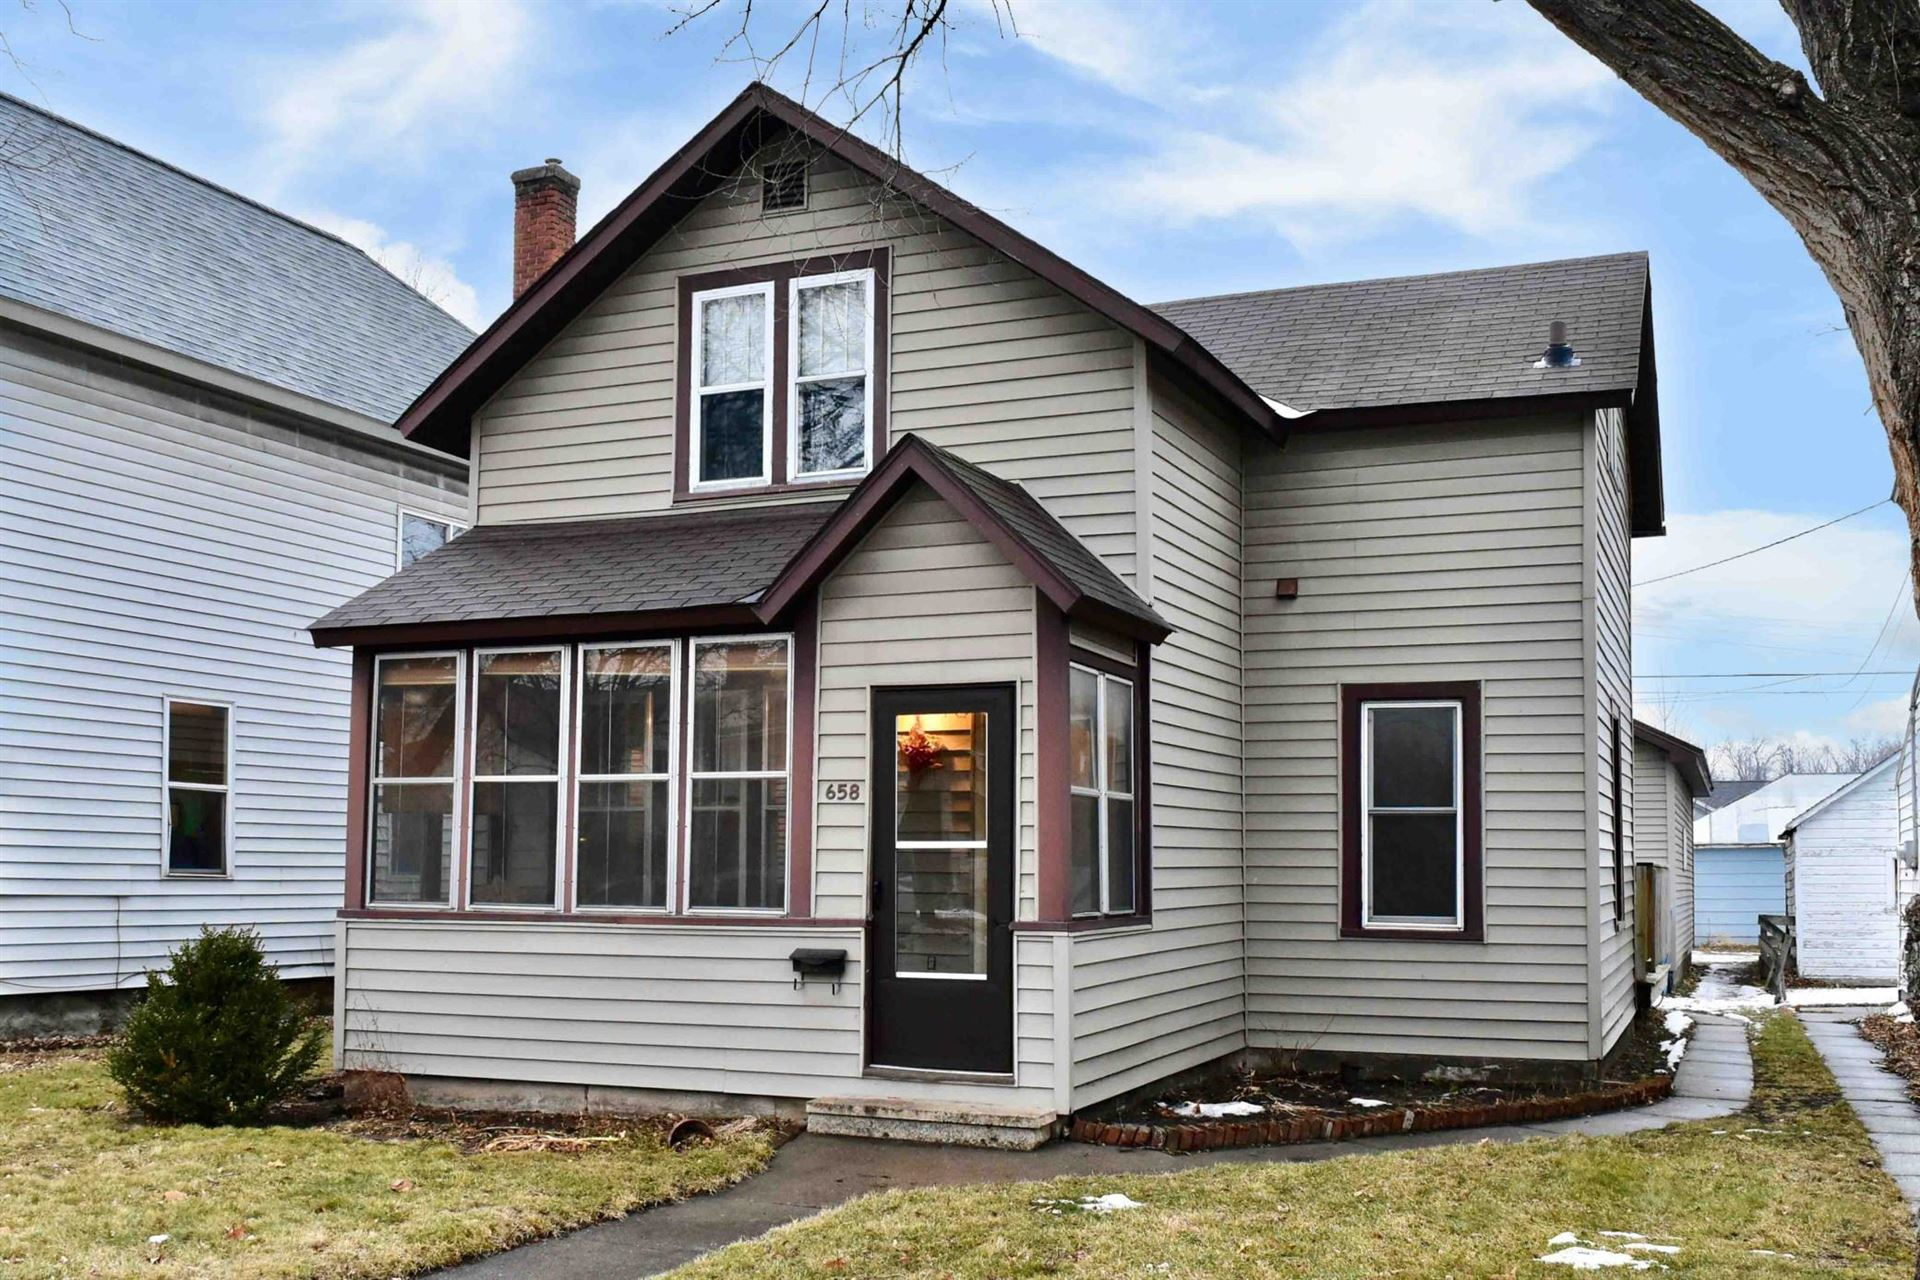 658 W 5th Street, Winona, MN 55987 - MLS#: 5701792